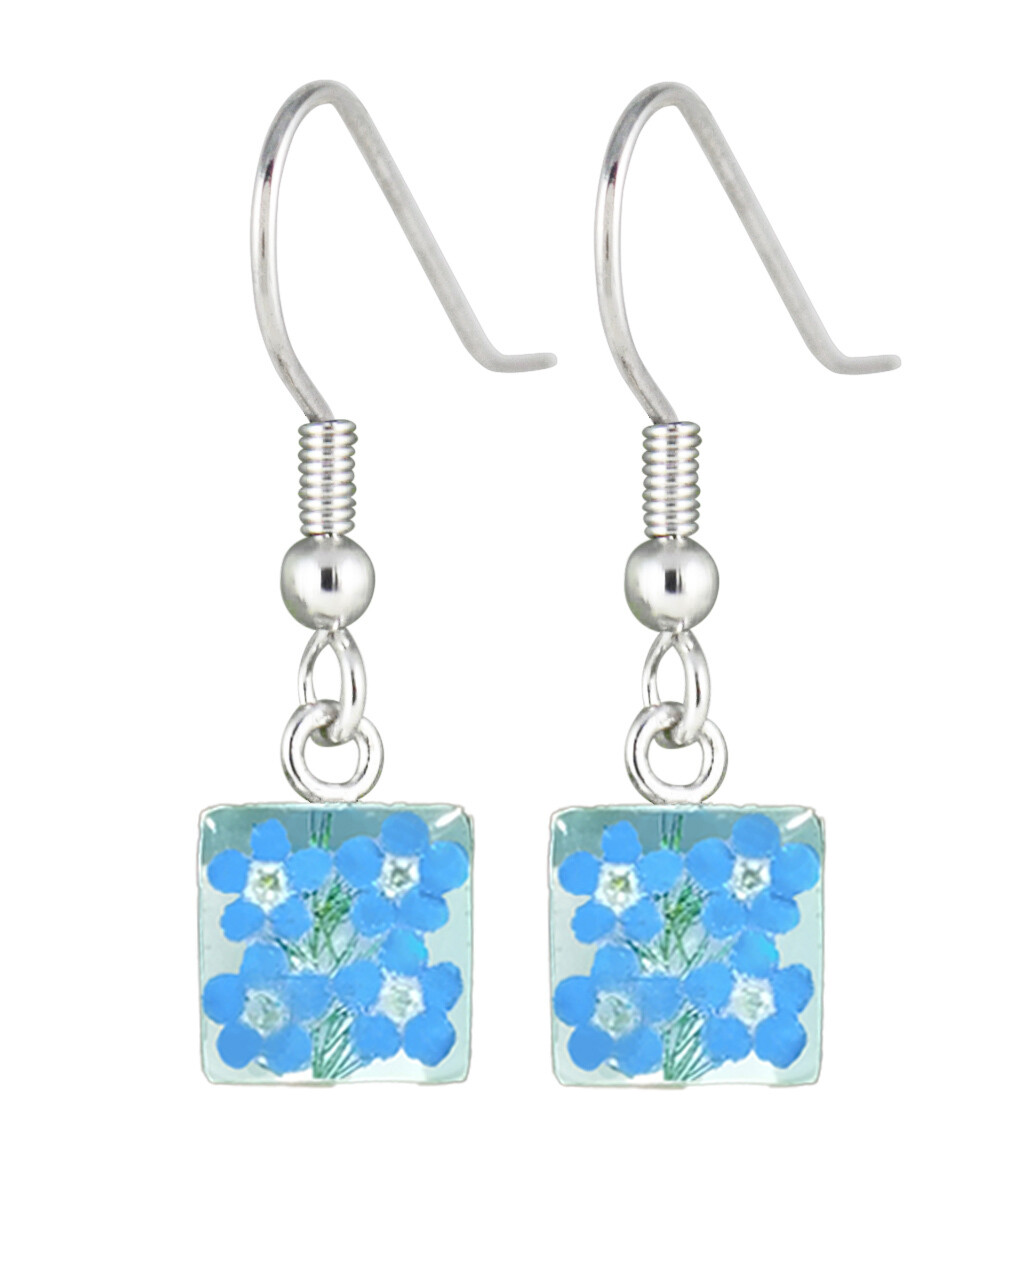 Real Forget-Me-Not, Small Square Earrings, White Background